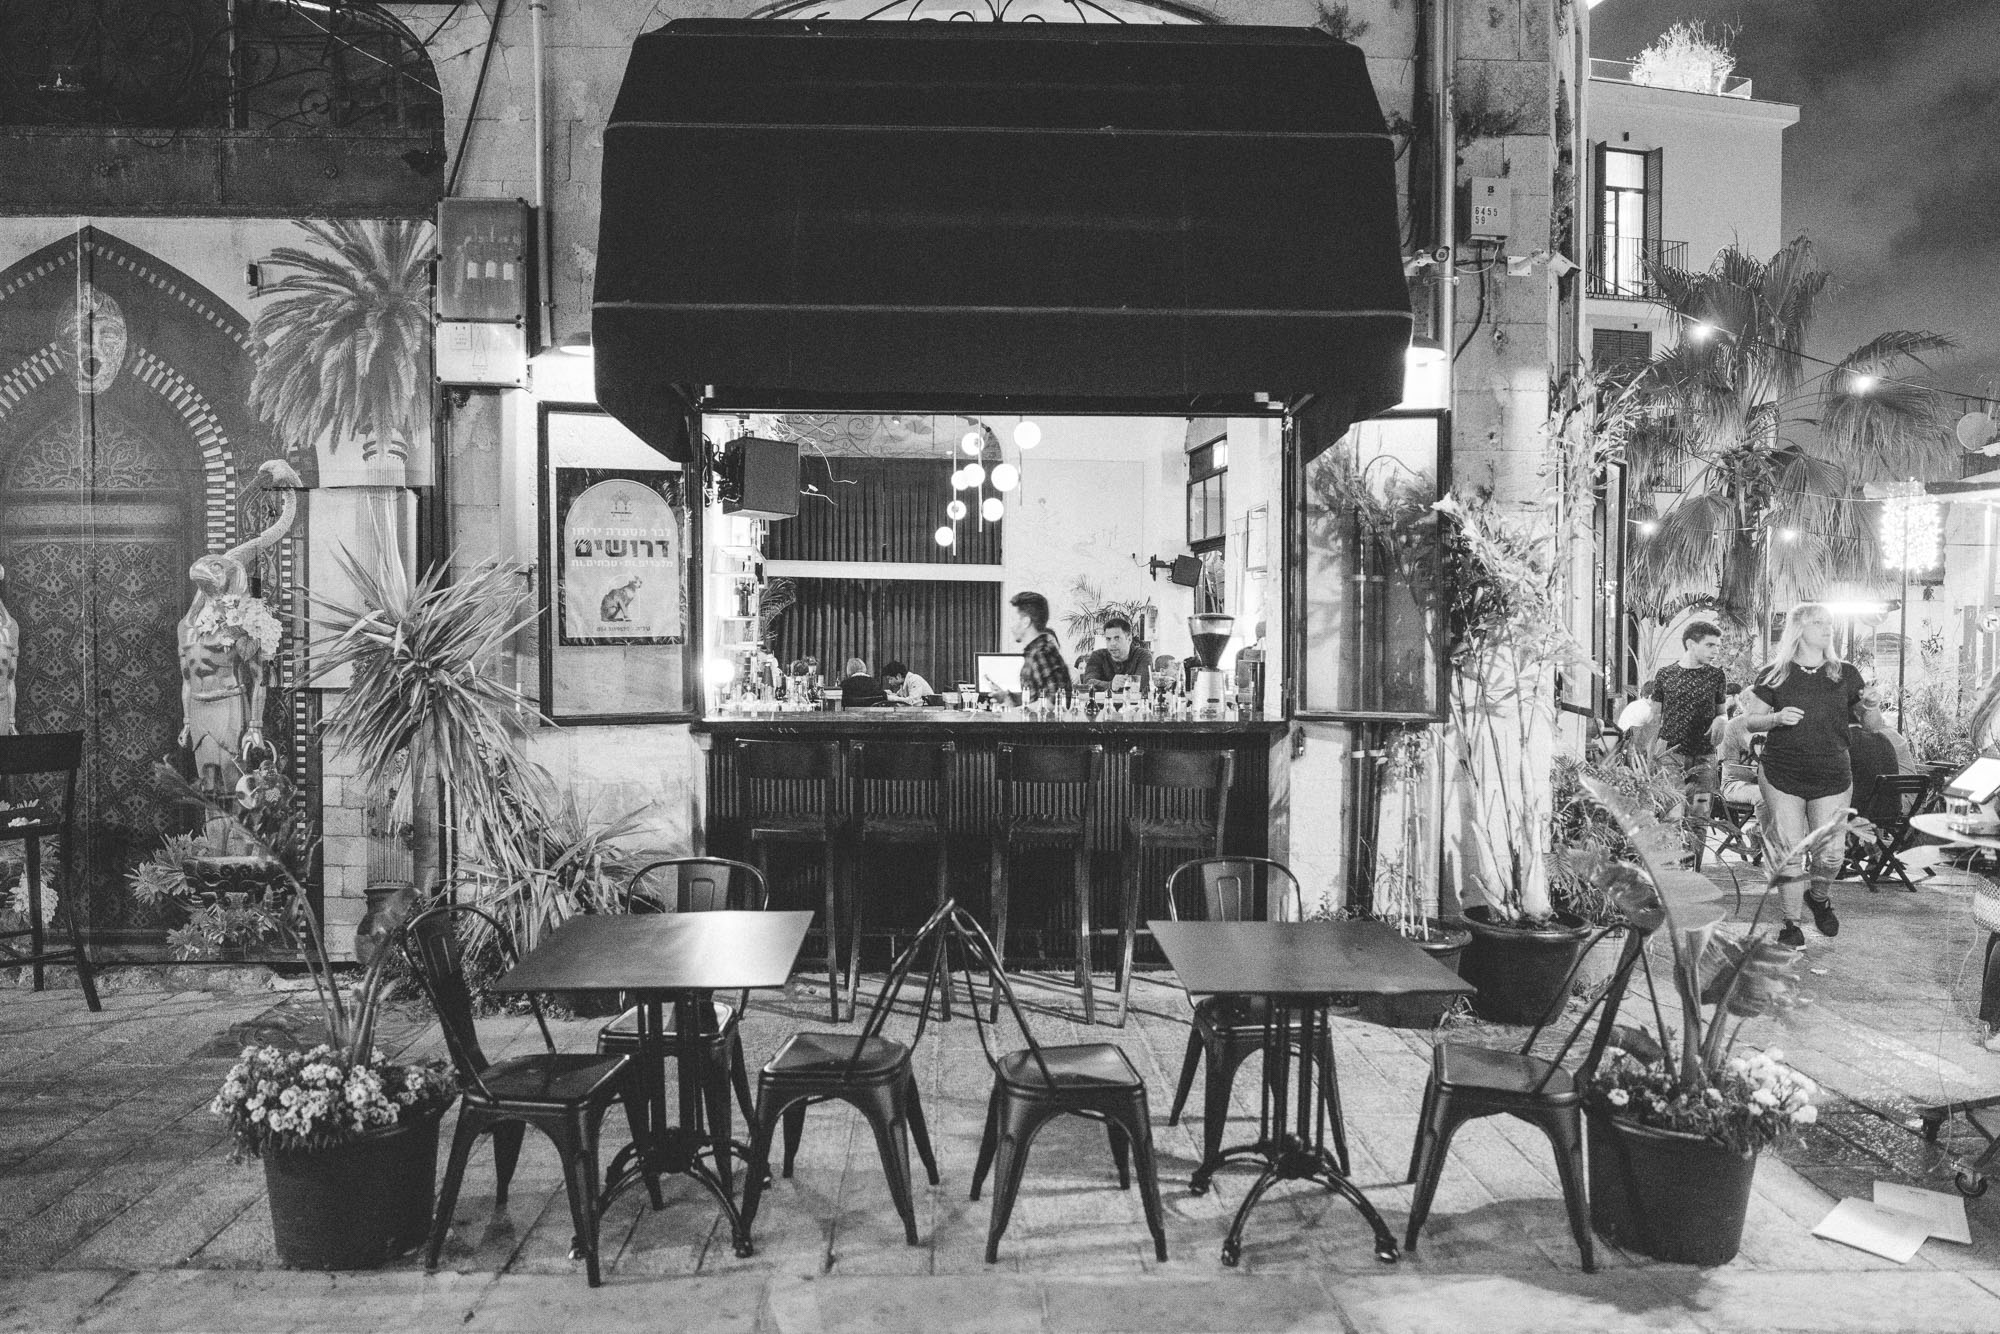 Jericho restaurant outdoor patio seating in Jaffa old town, Tel Aviv, Israel